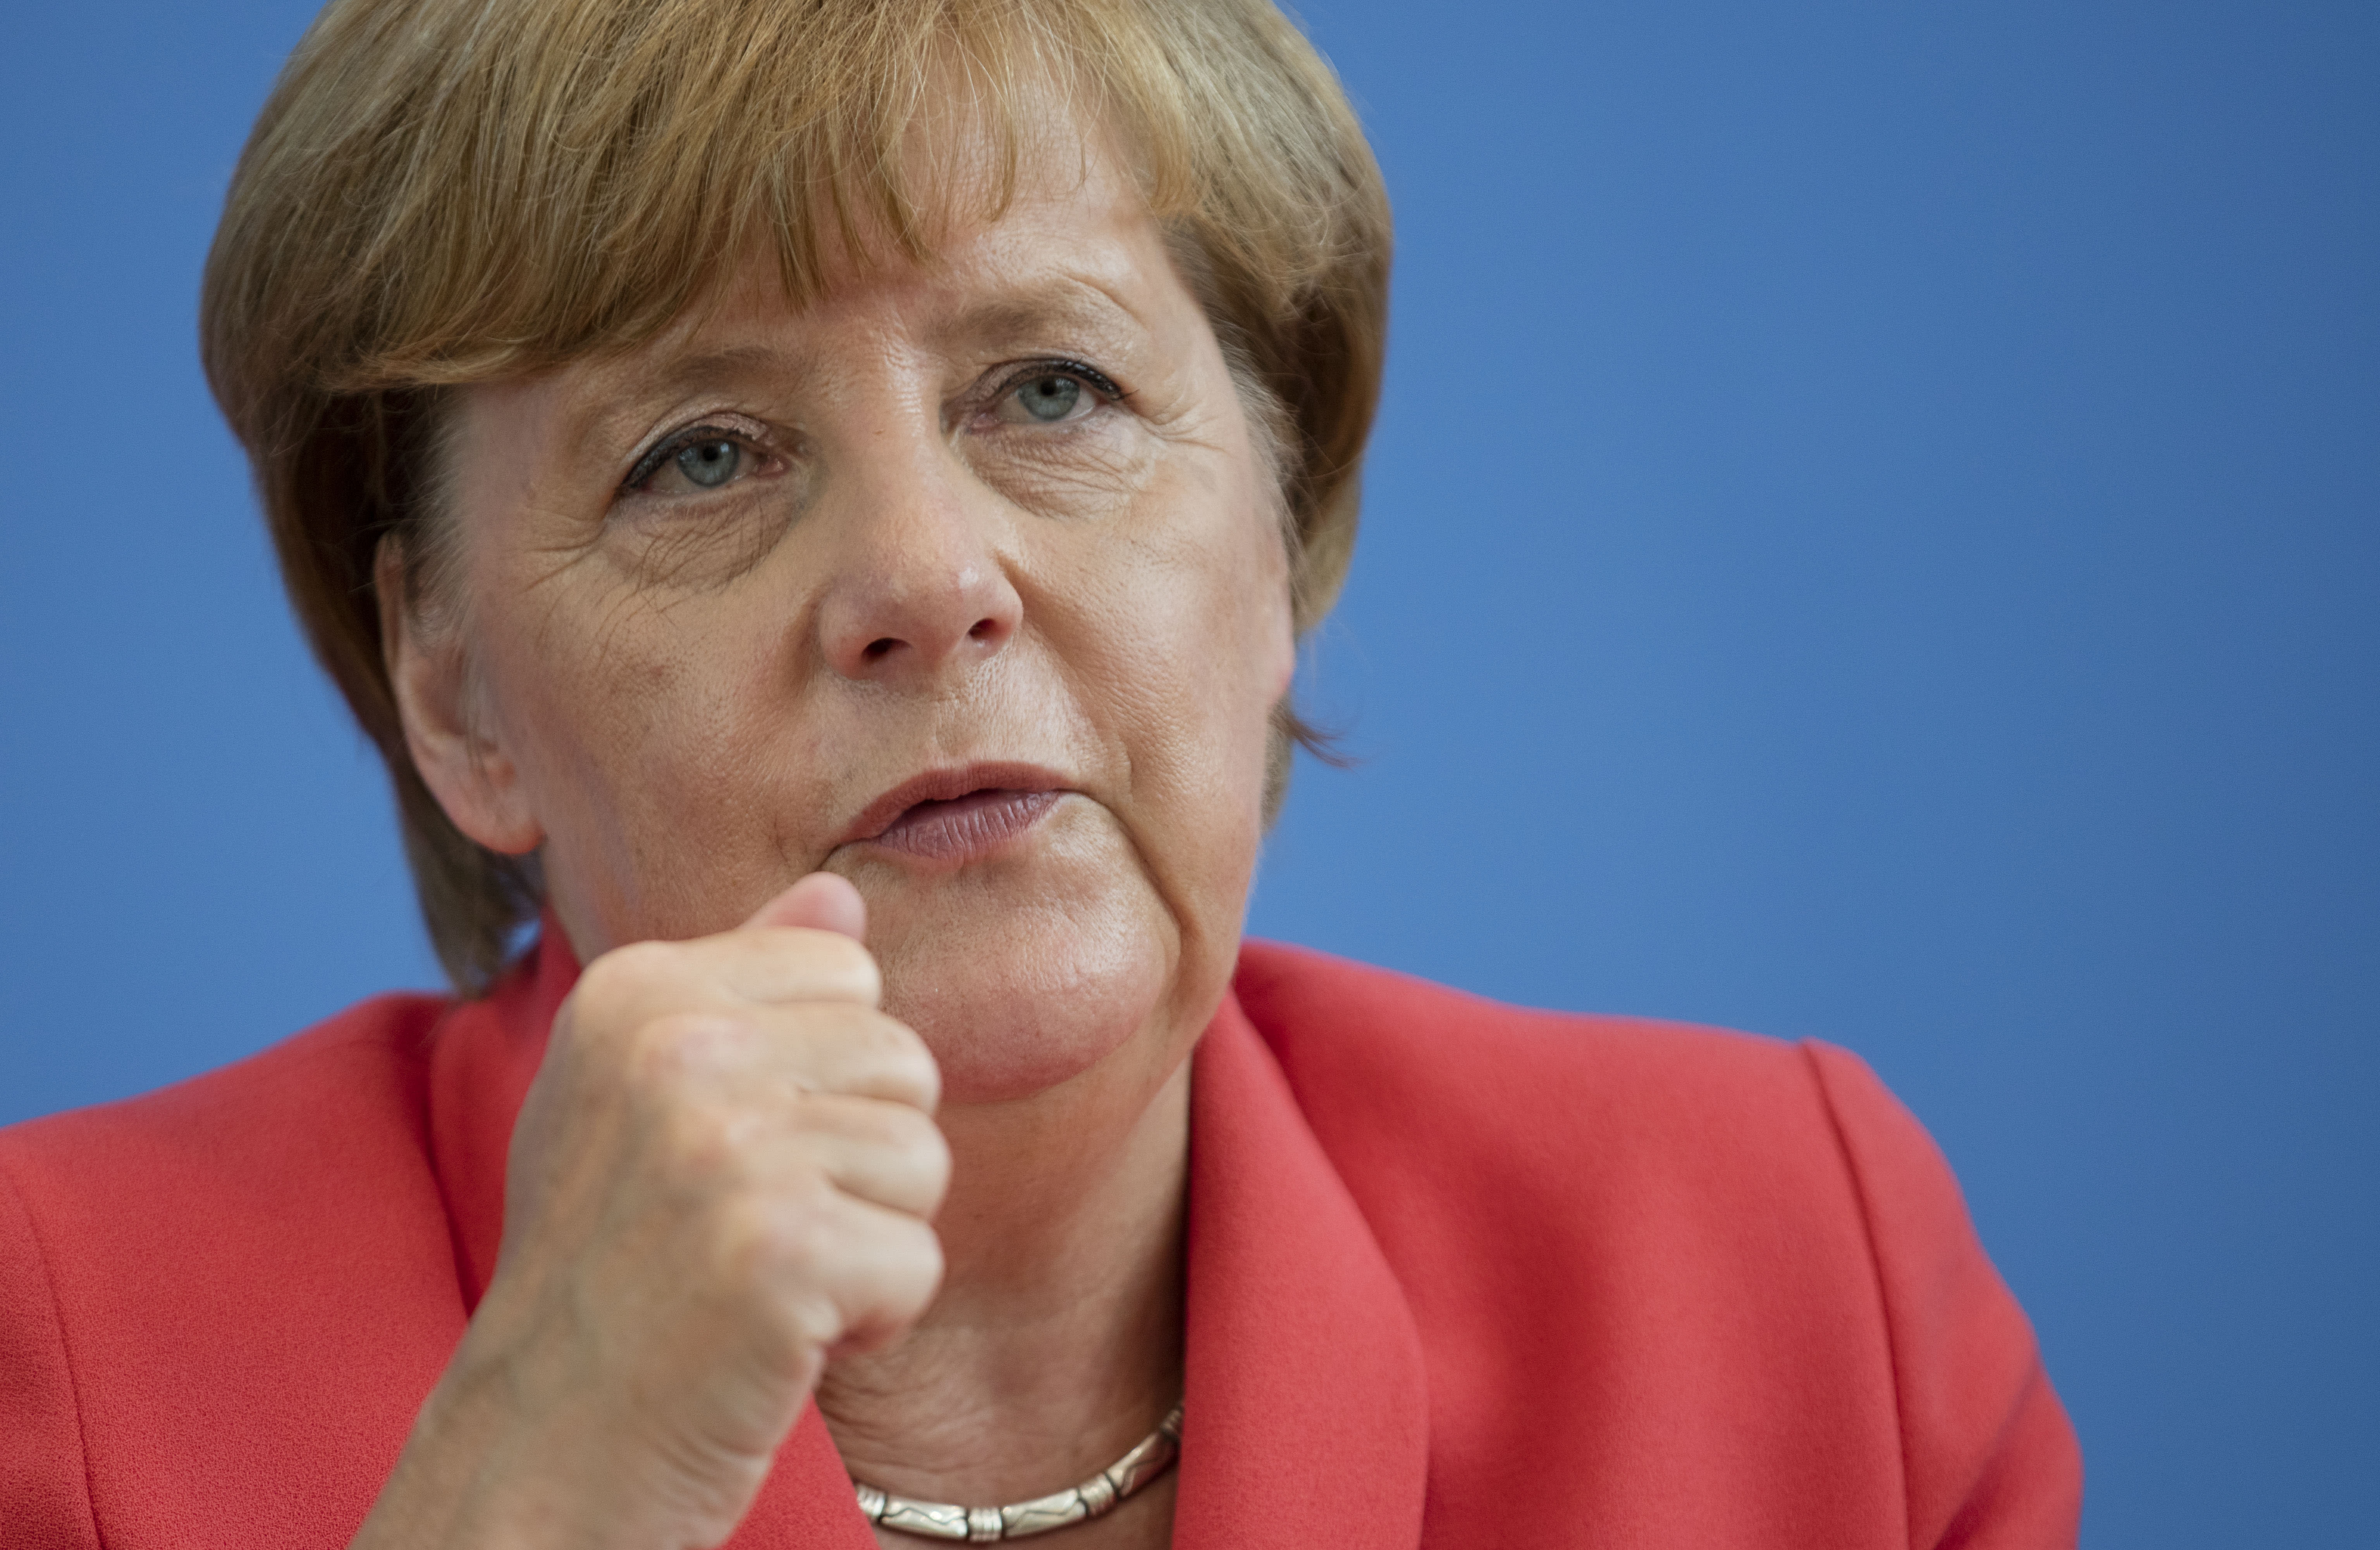 Merkel: expect Greece to fulfil obligations after election